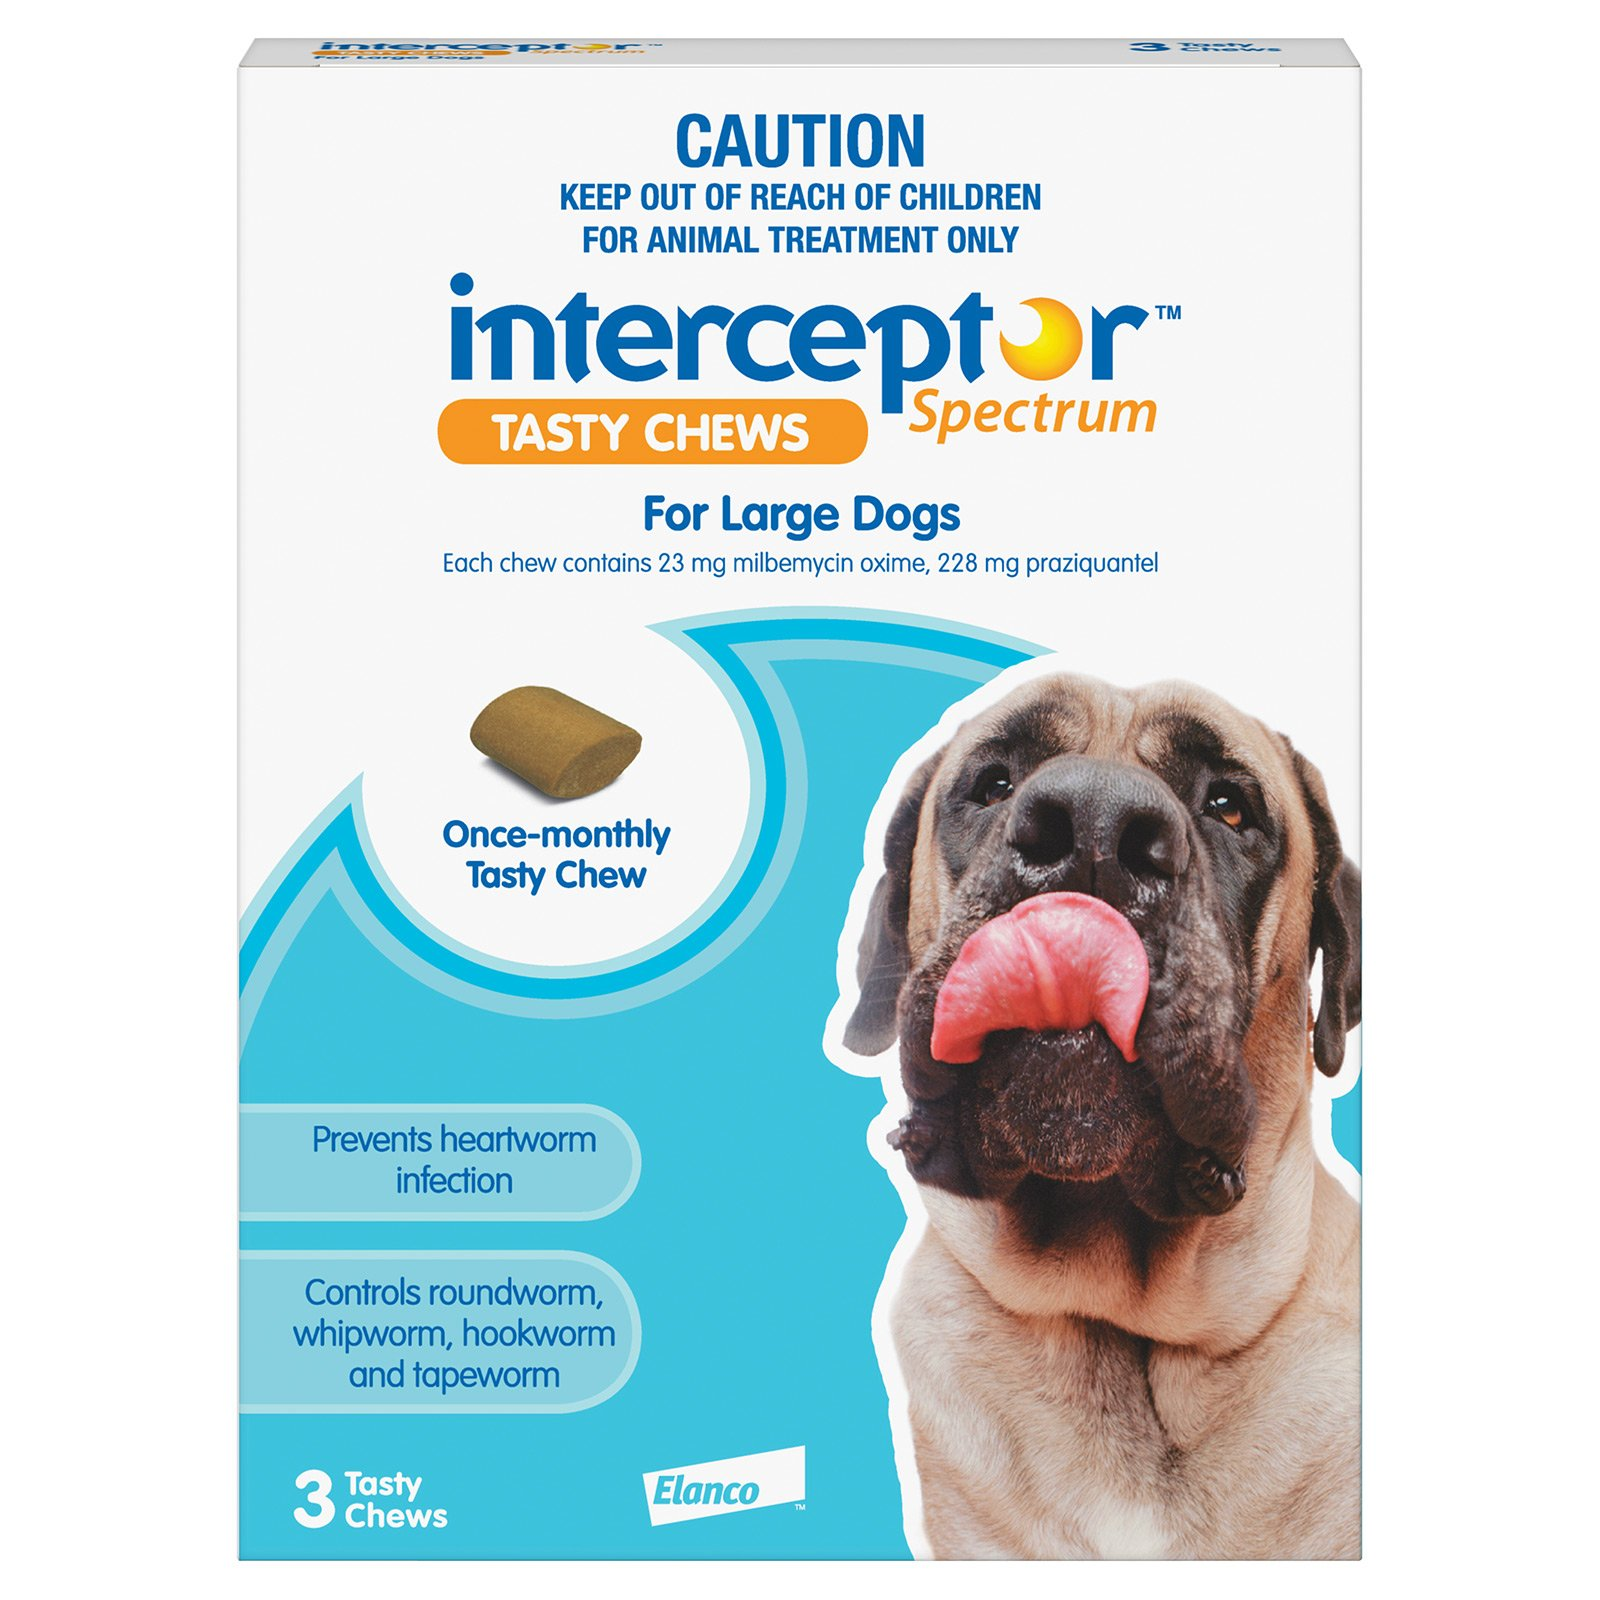 interceptor-spectrum-tasty-chews-for-large-dogs-22-to-45kg-blue.jpg